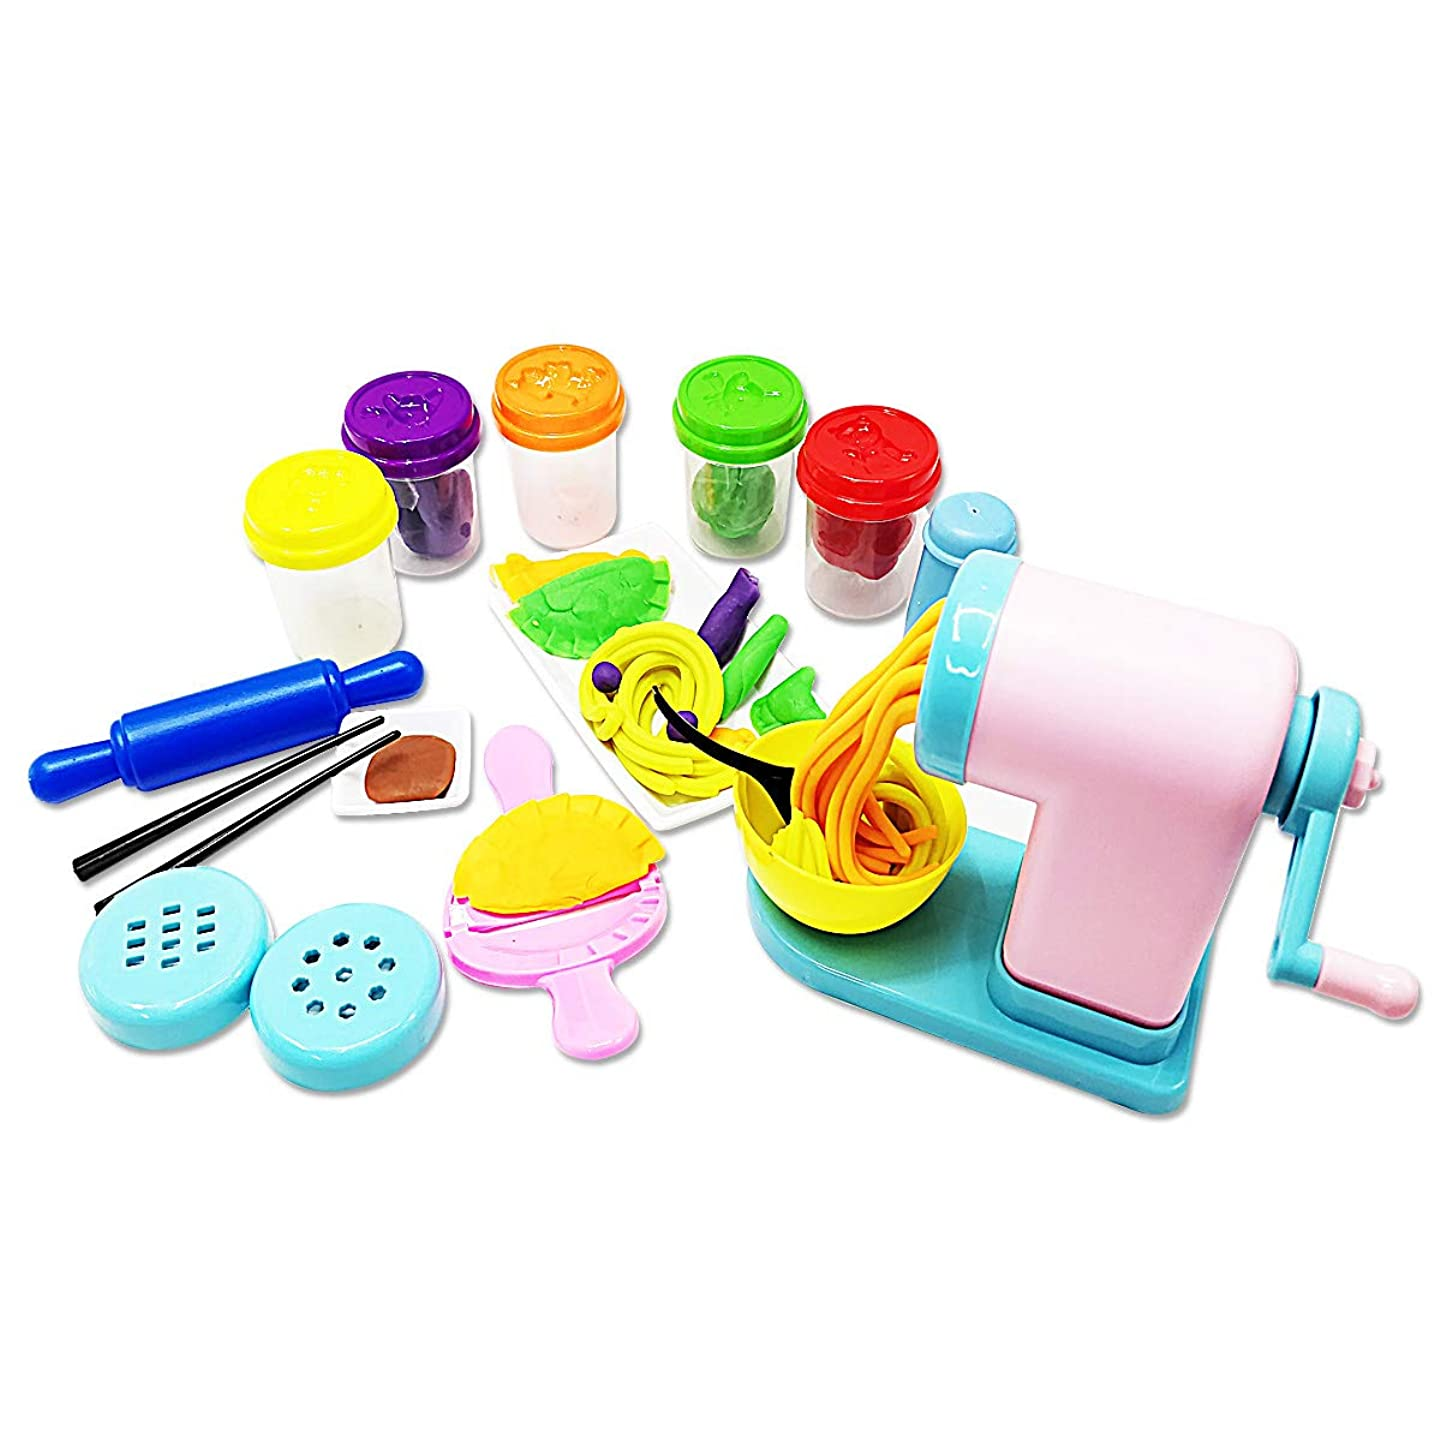 FUNFINDING DIY Air Dry Clay Modeling Clay Crafts Kit for Children Ceative Super Light Nontoxic Educational Clay Toy